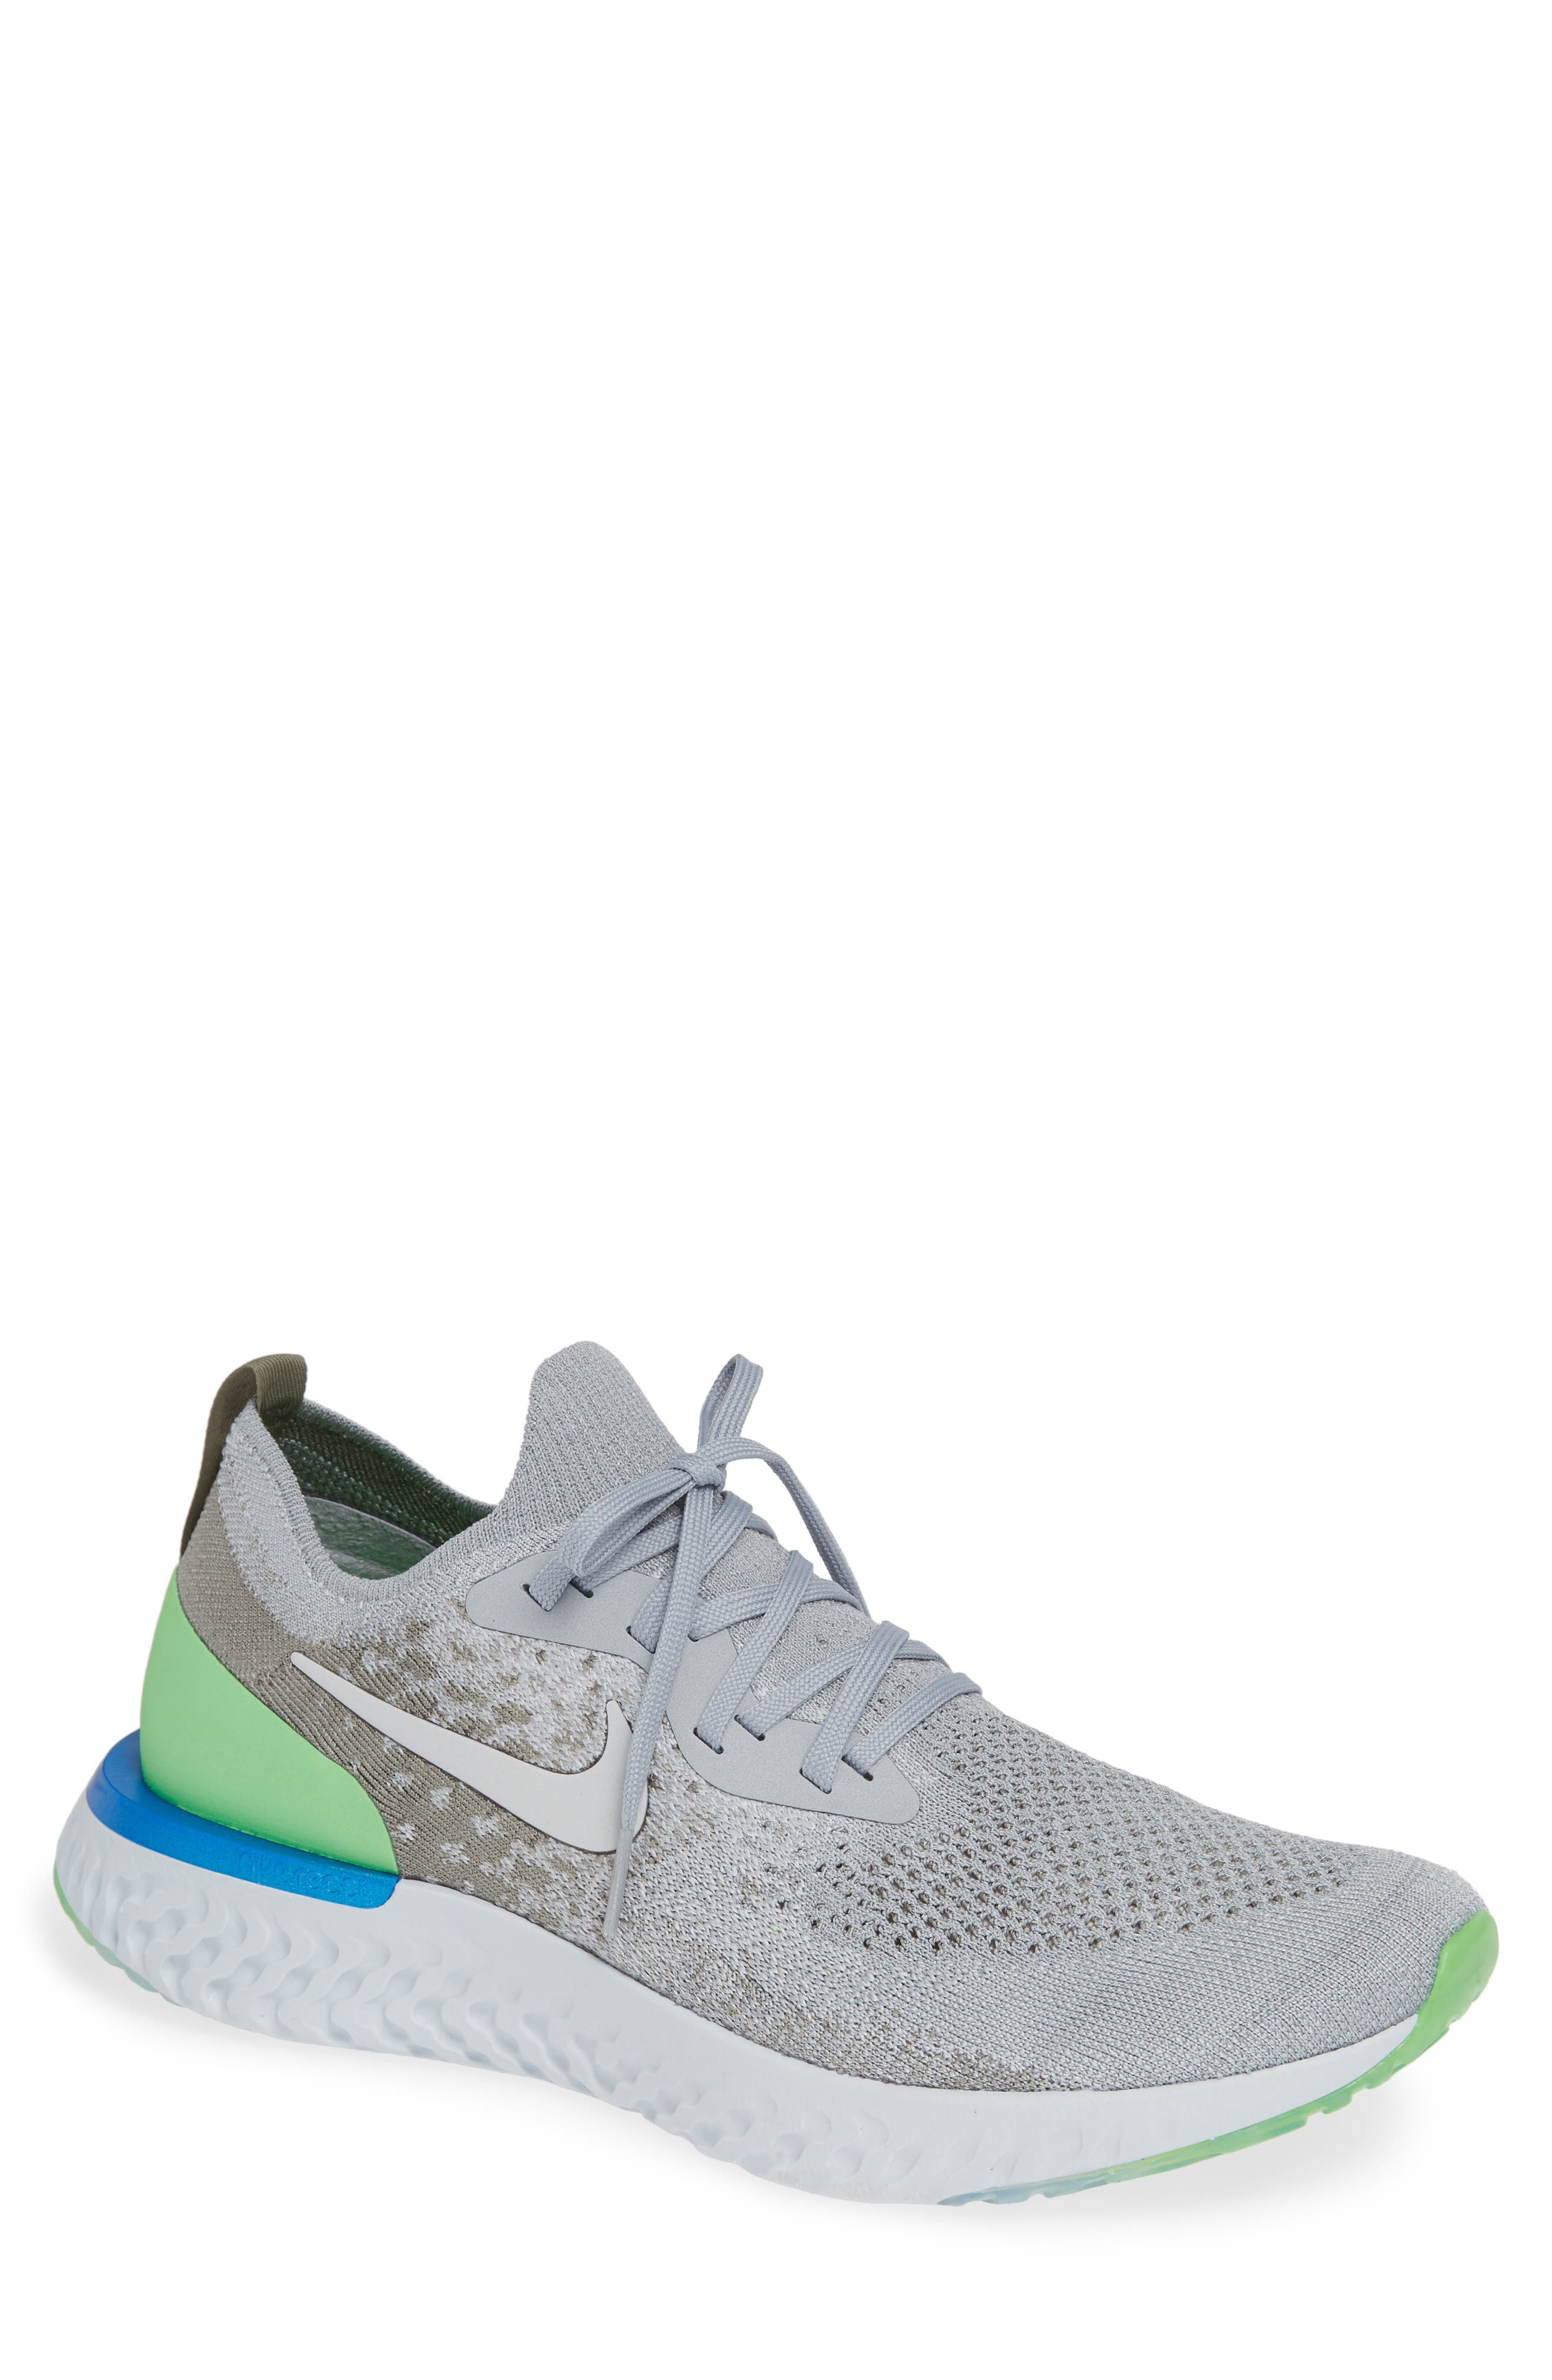 Epic React Flyknit Running Shoe,                             Main thumbnail 1, color,                             GREY